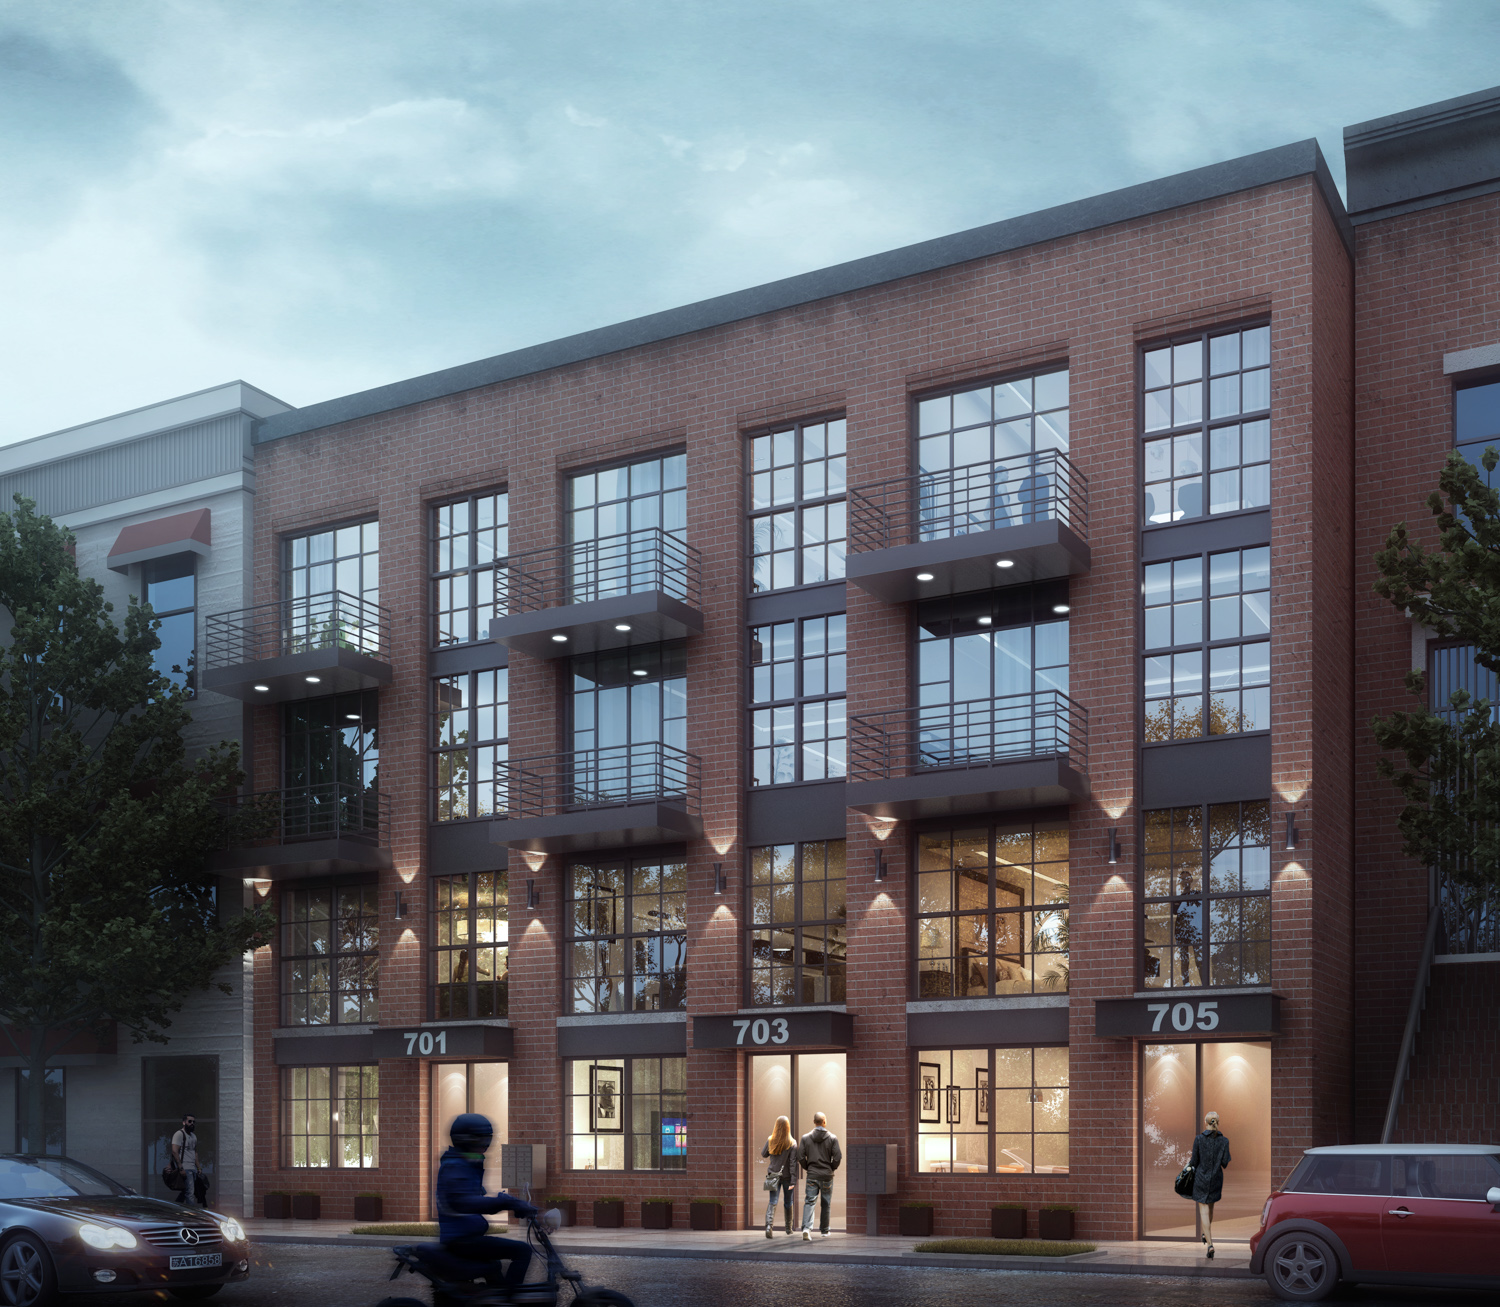 The IMC Architecture-Designed 701 Lafayette Avenue Is Revealed In Bedford-Stuyvesant, Brooklyn